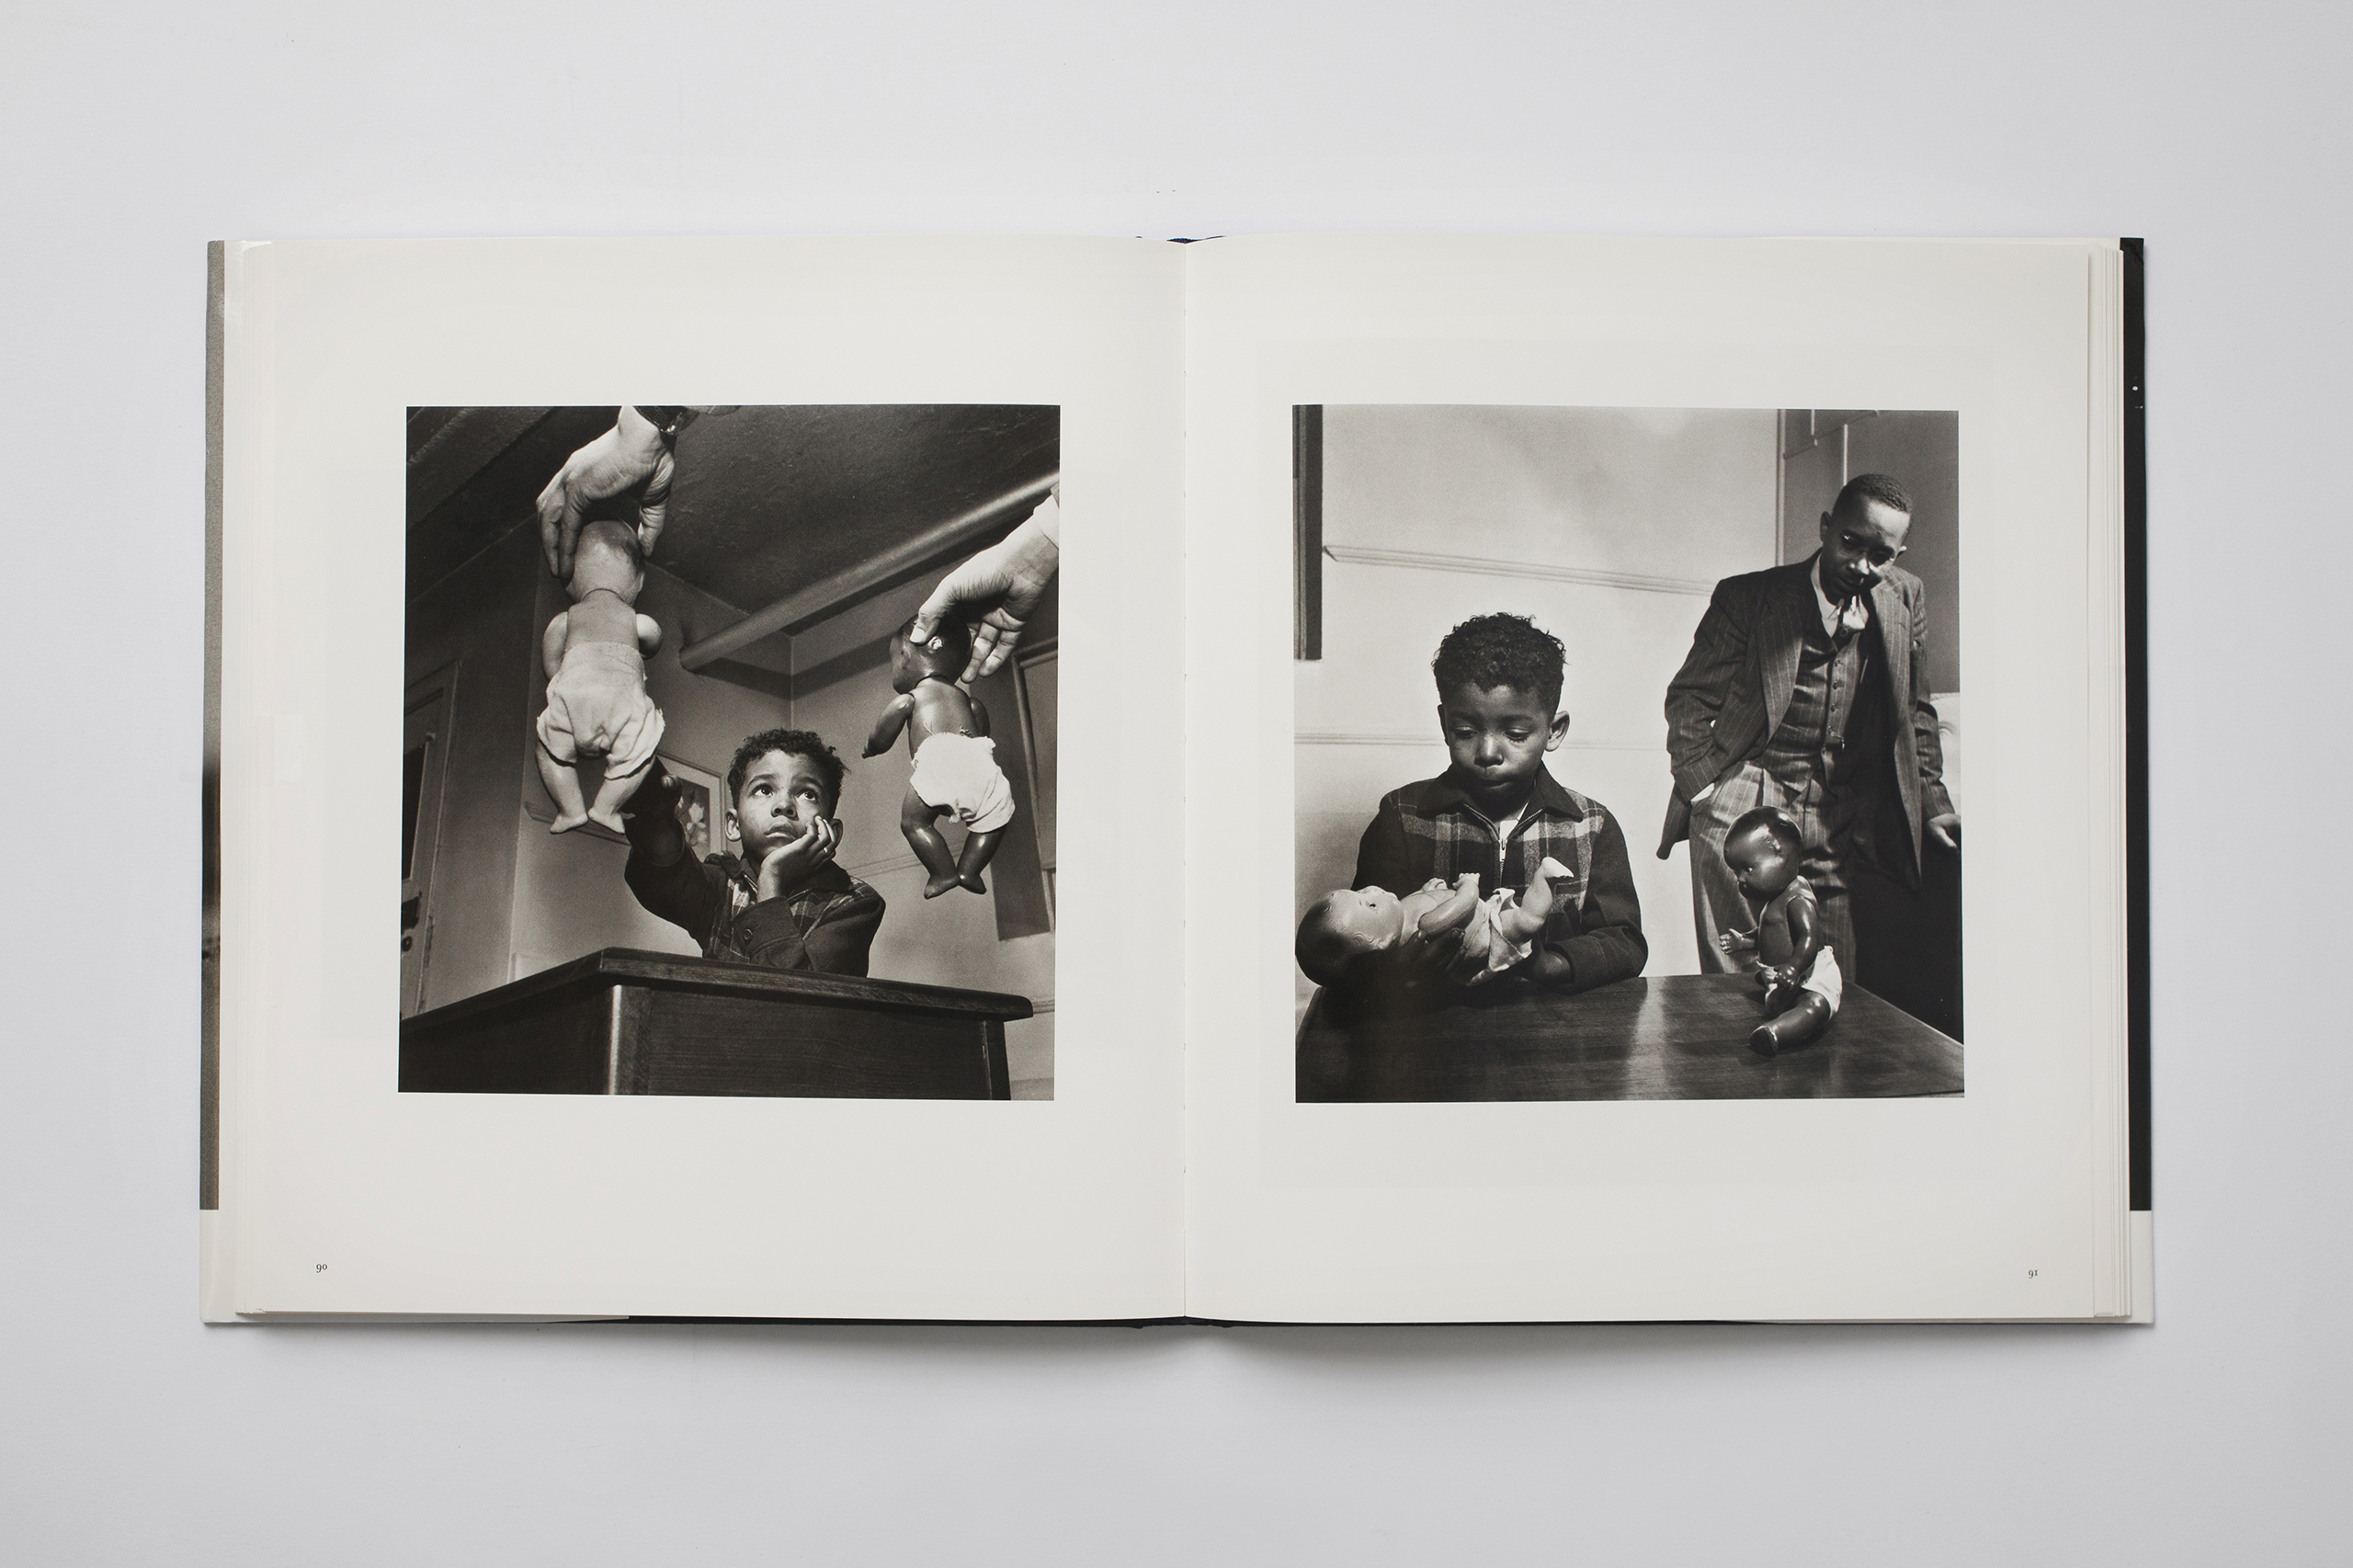 Selected by LIFE Photo Editor Liz Ronk:  This book brings together the important collaboration between two artistic geniuses, Gordon Parks and Ralph Ellison, in the 1950s, Harlem. In addition to the published LIFE story, pages are filled with unpublished images, contact sheets and hand written notes.  Although the work was created more than 60 years ago, the relevance of social change has never rung so true.""